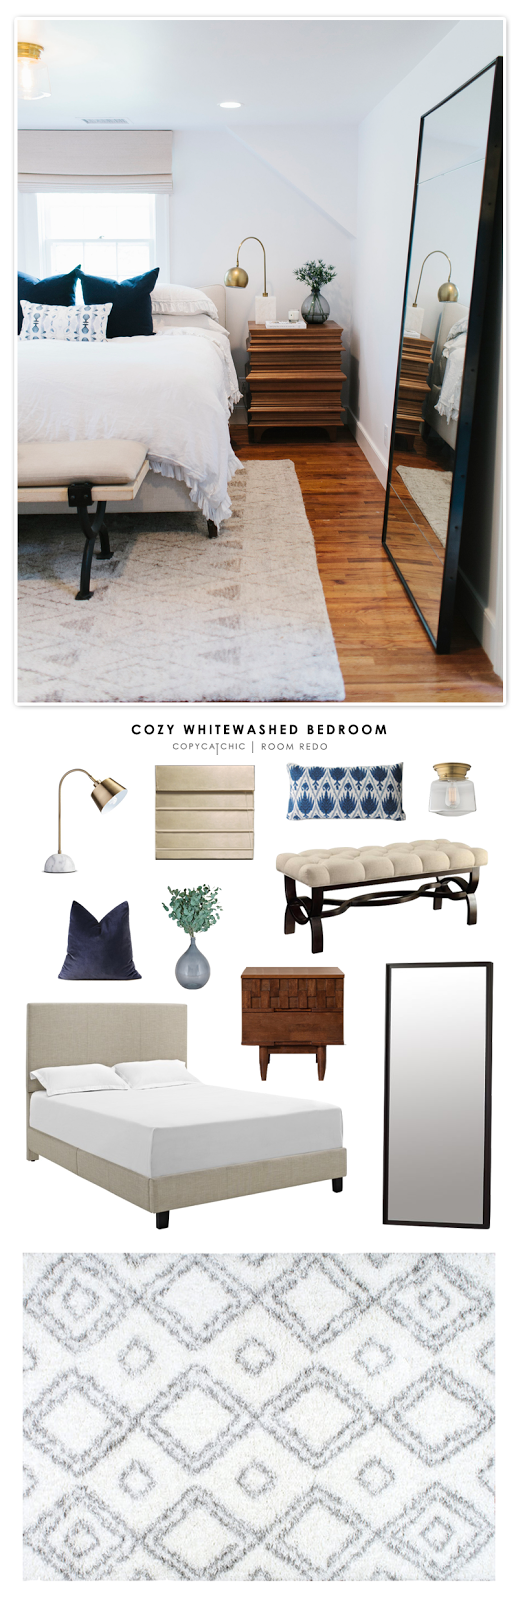 Copy Cat Chic Room Redo Cozy Whitewashed Bedroom